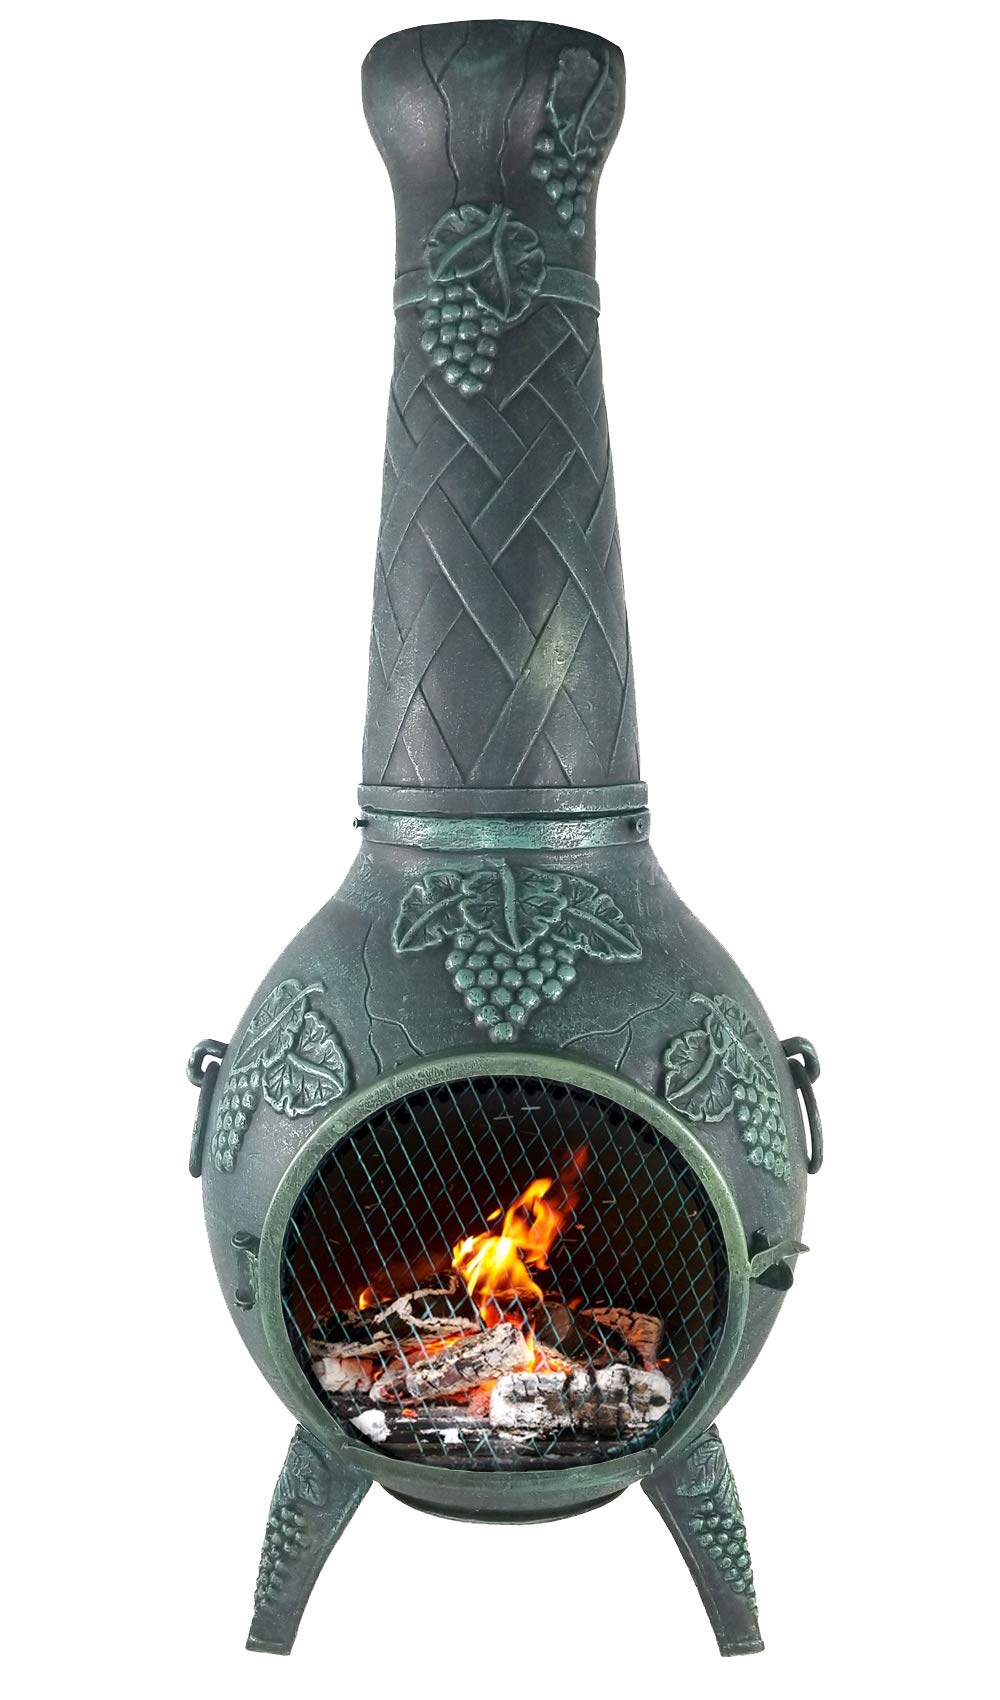 The Blue Rooster CAST Aluminum Grape Wood Burning Chiminea in Green. by The Blue Rooster